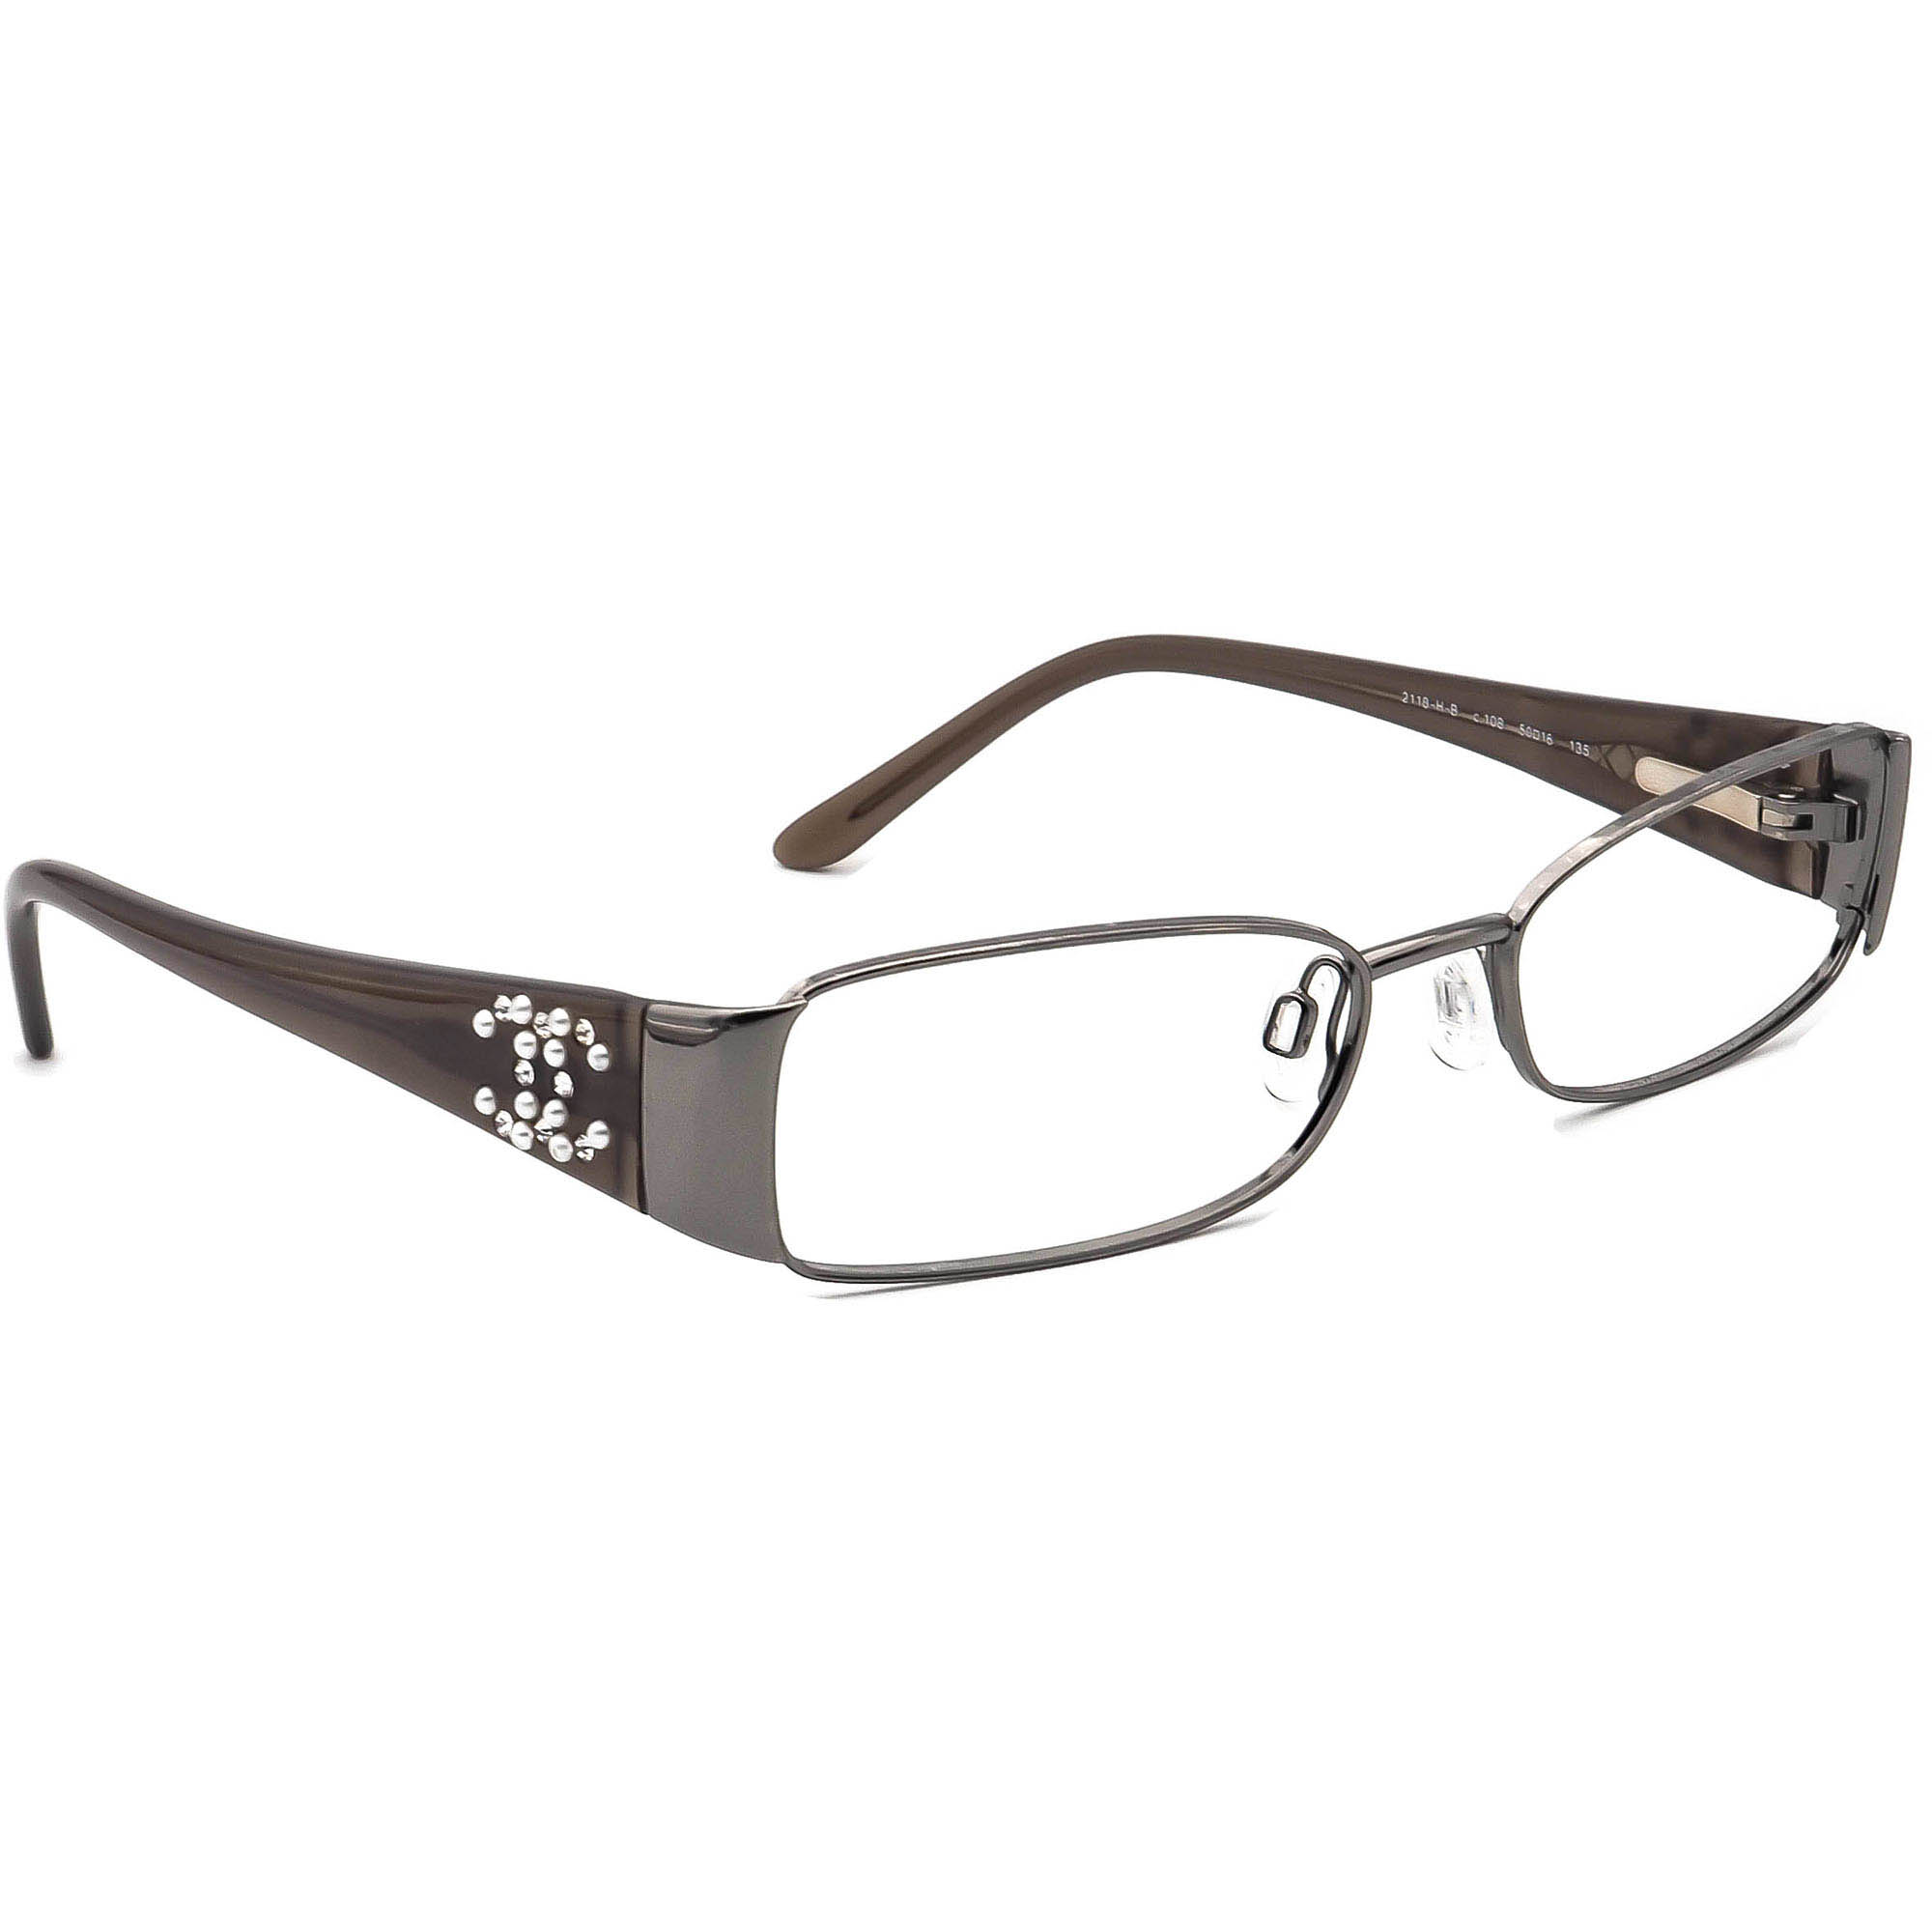 Chanel 2118-H-B c.108 Eyeglasses